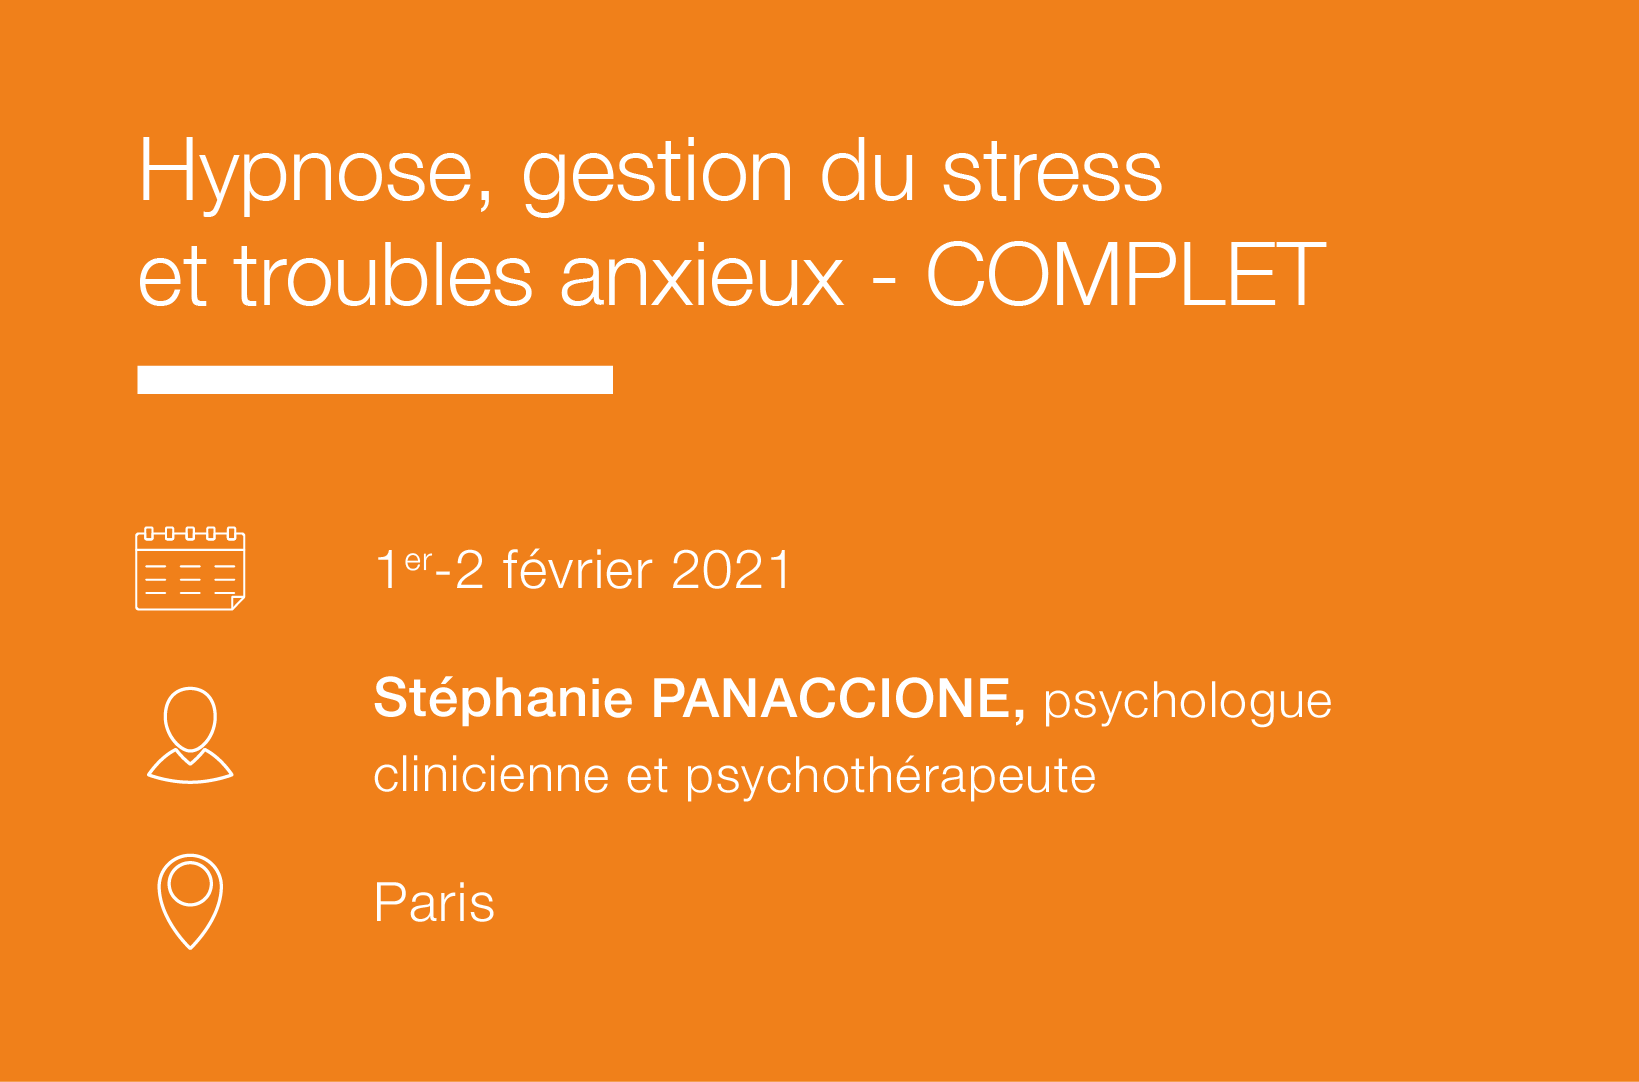 Seminaire Hypnose, Gestion du stress et Troubles anxieux-IFH